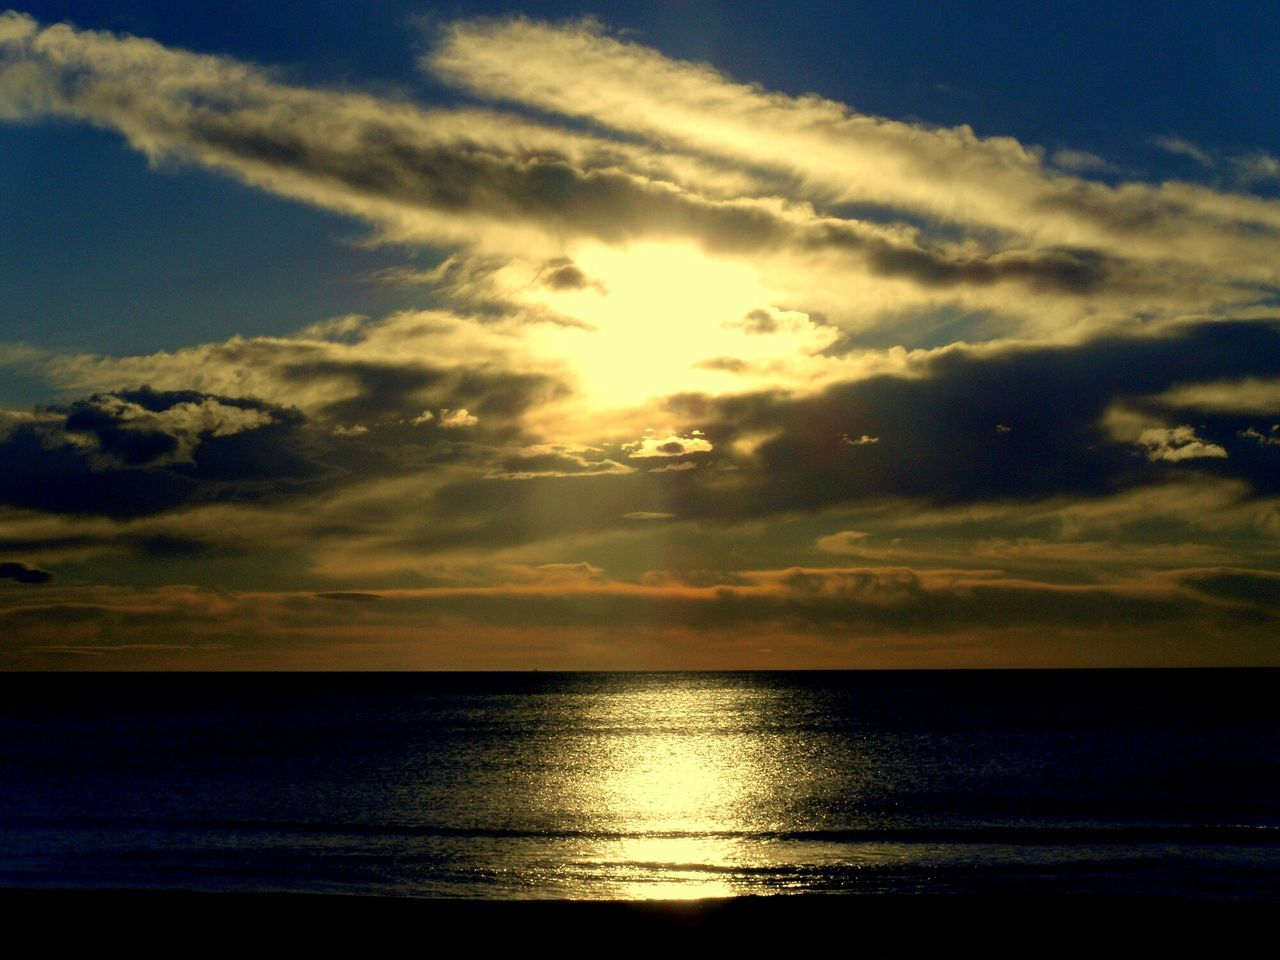 Sun Shining Through Clouds Over Sea During Dusk